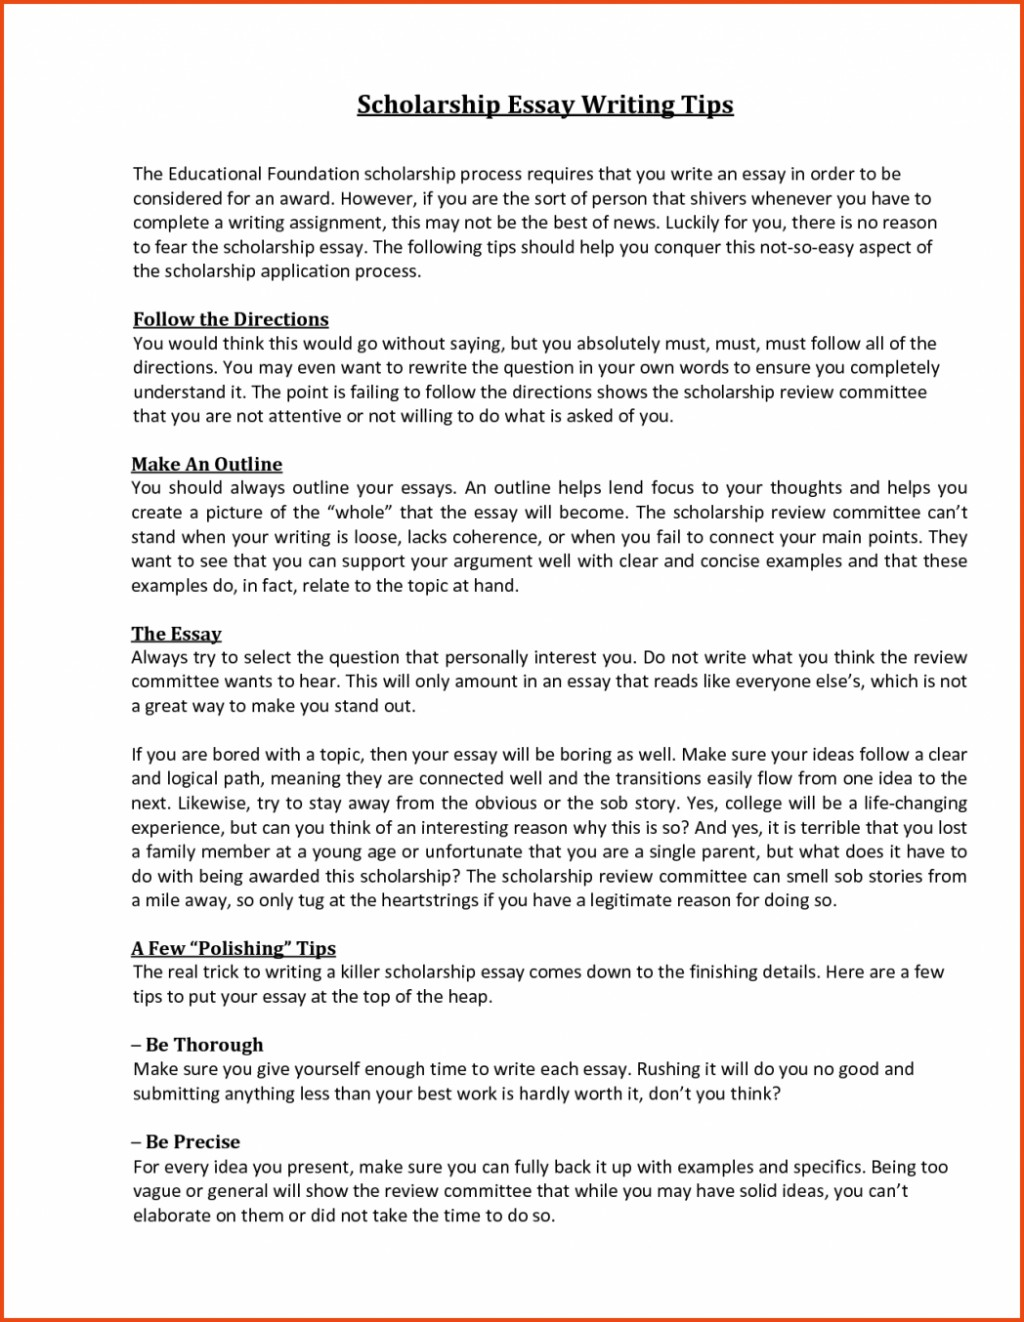 015 Pay For Essays Five Typical Mistakes When Writing Academic Paper Checker Someone To Write Your Essay You Ideas Collection Scholarship Awesome It Can 1048x1354 Dreaded Cheap Uk Magazines That Large